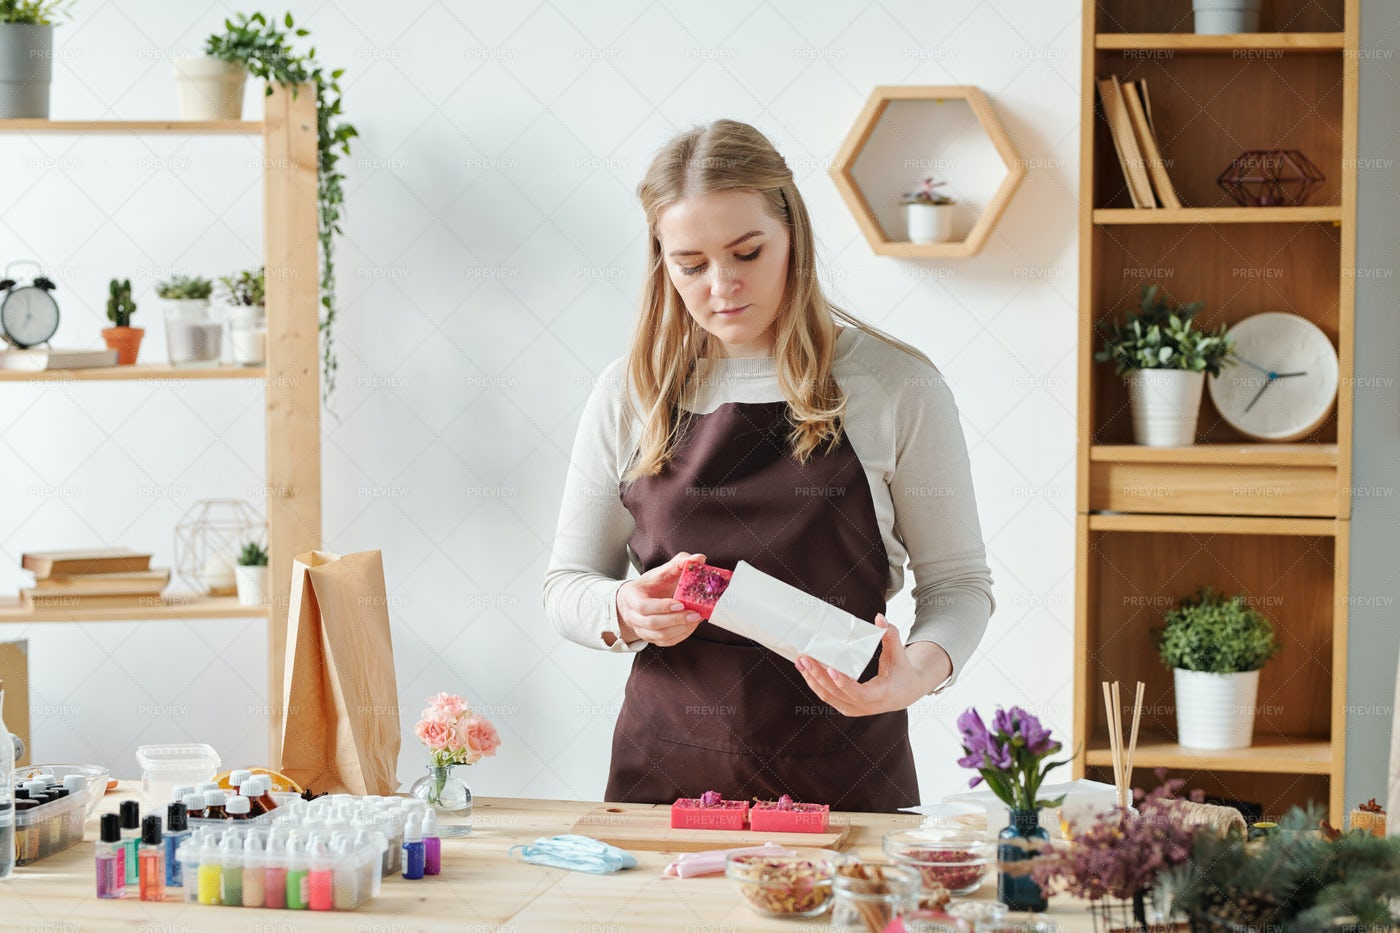 Blonde Female In Apron Putting...: Stock Photos